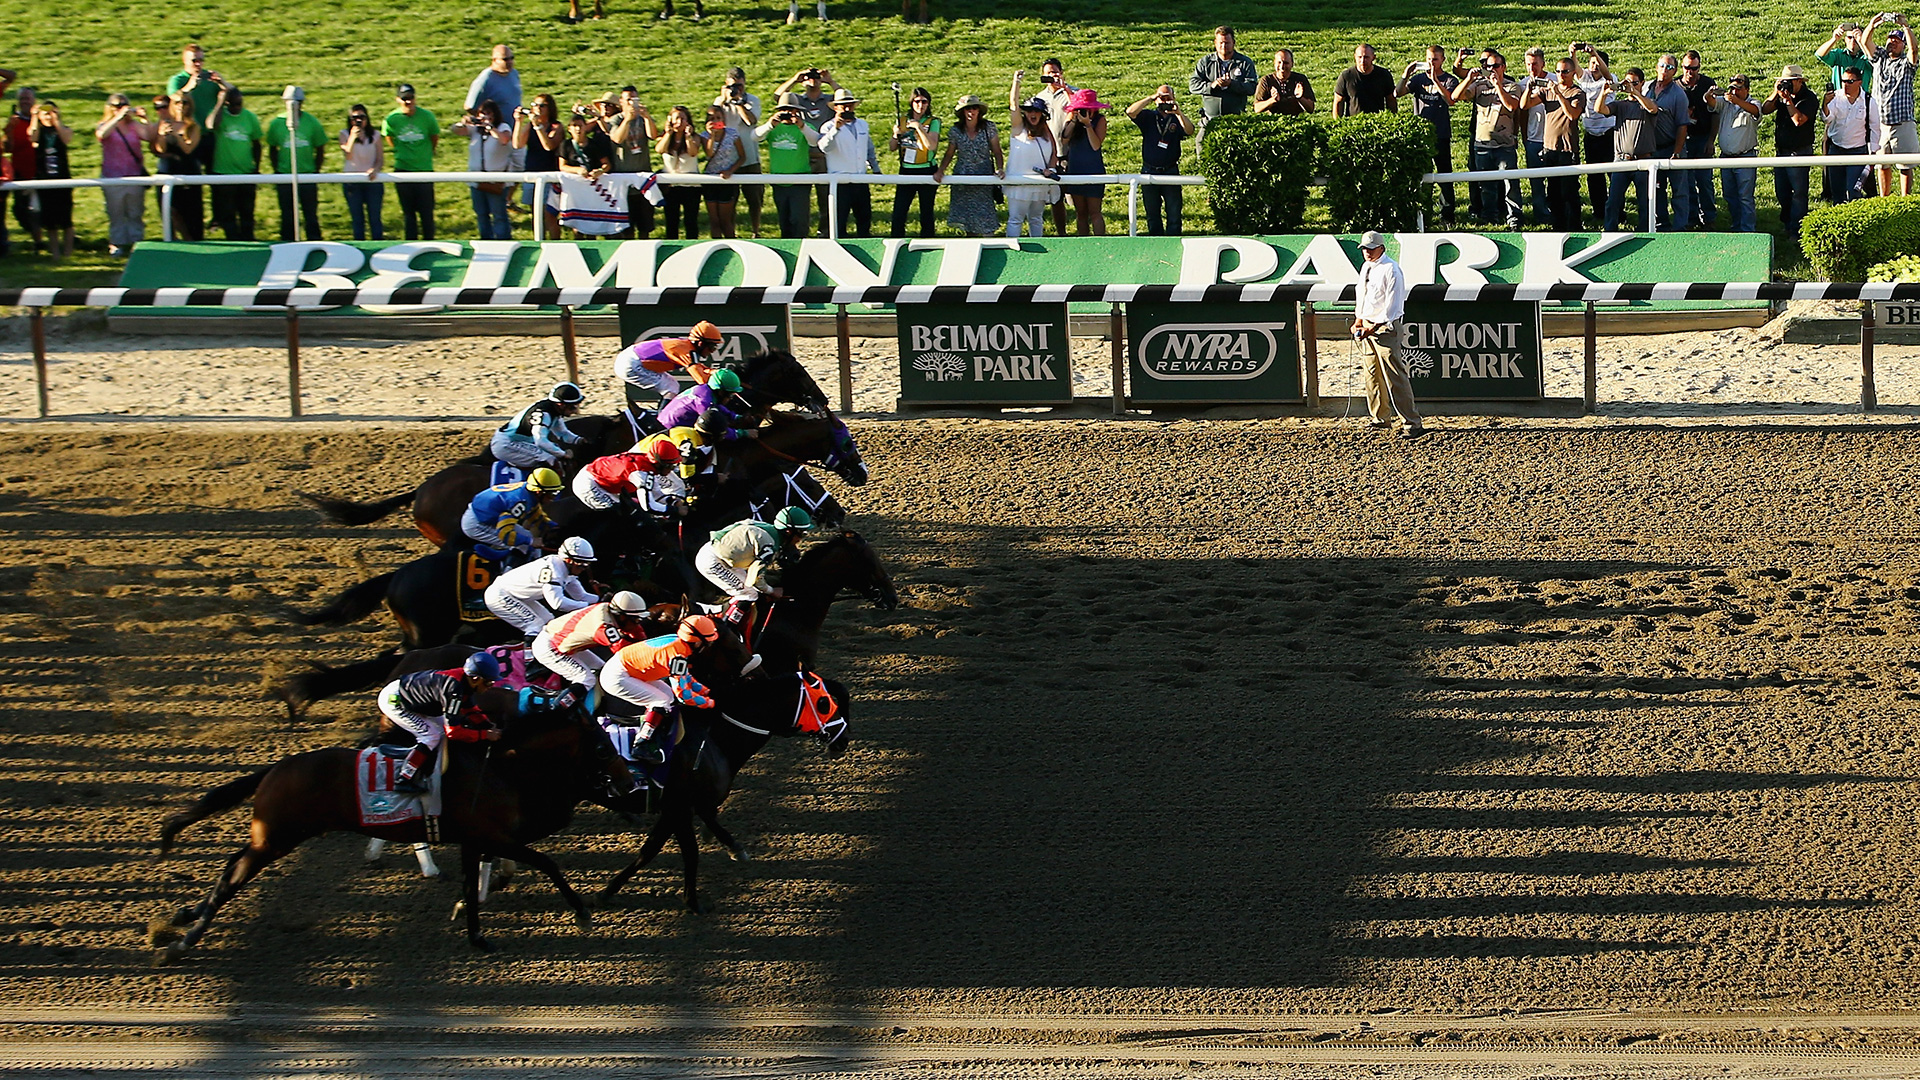 Bet on the belmont stakes c-betting